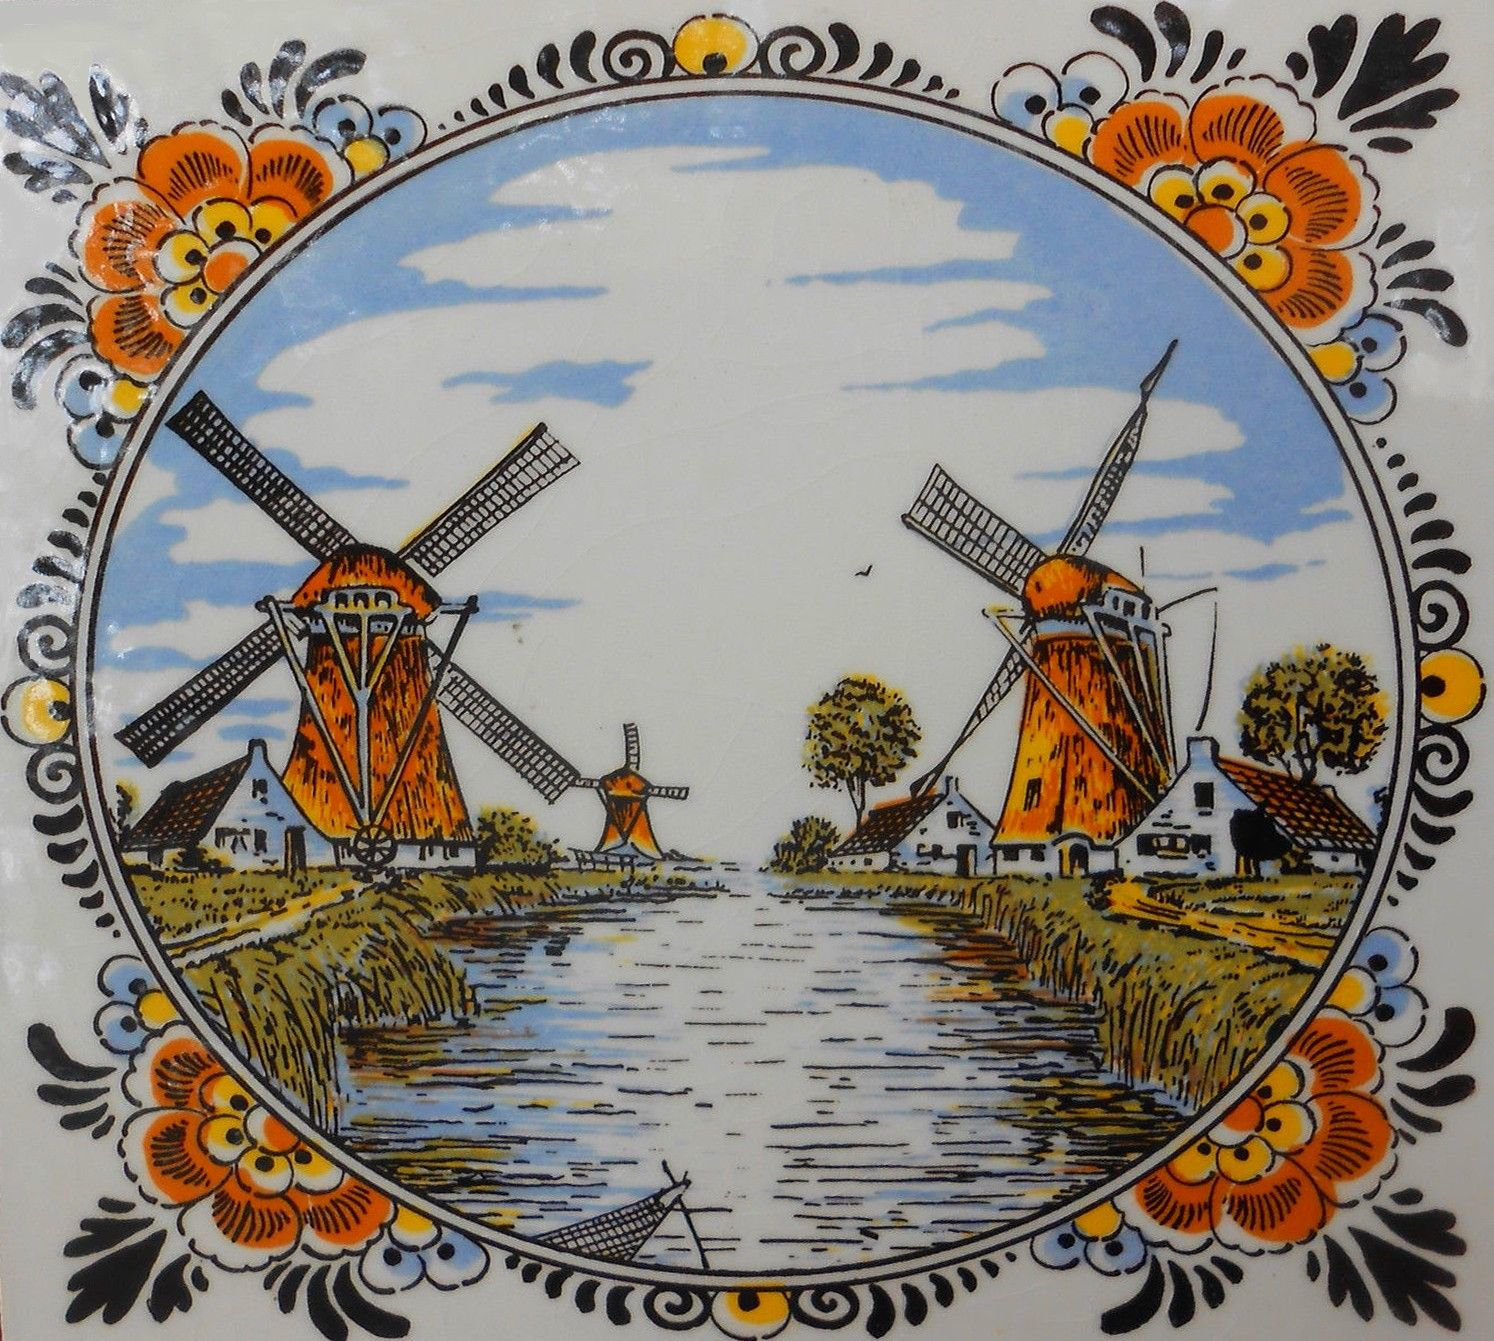 Delft holland windmills ceramic tile multi colored hand painted delft holland windmills ceramic tile multi colored hand painted vintage dailygadgetfo Image collections